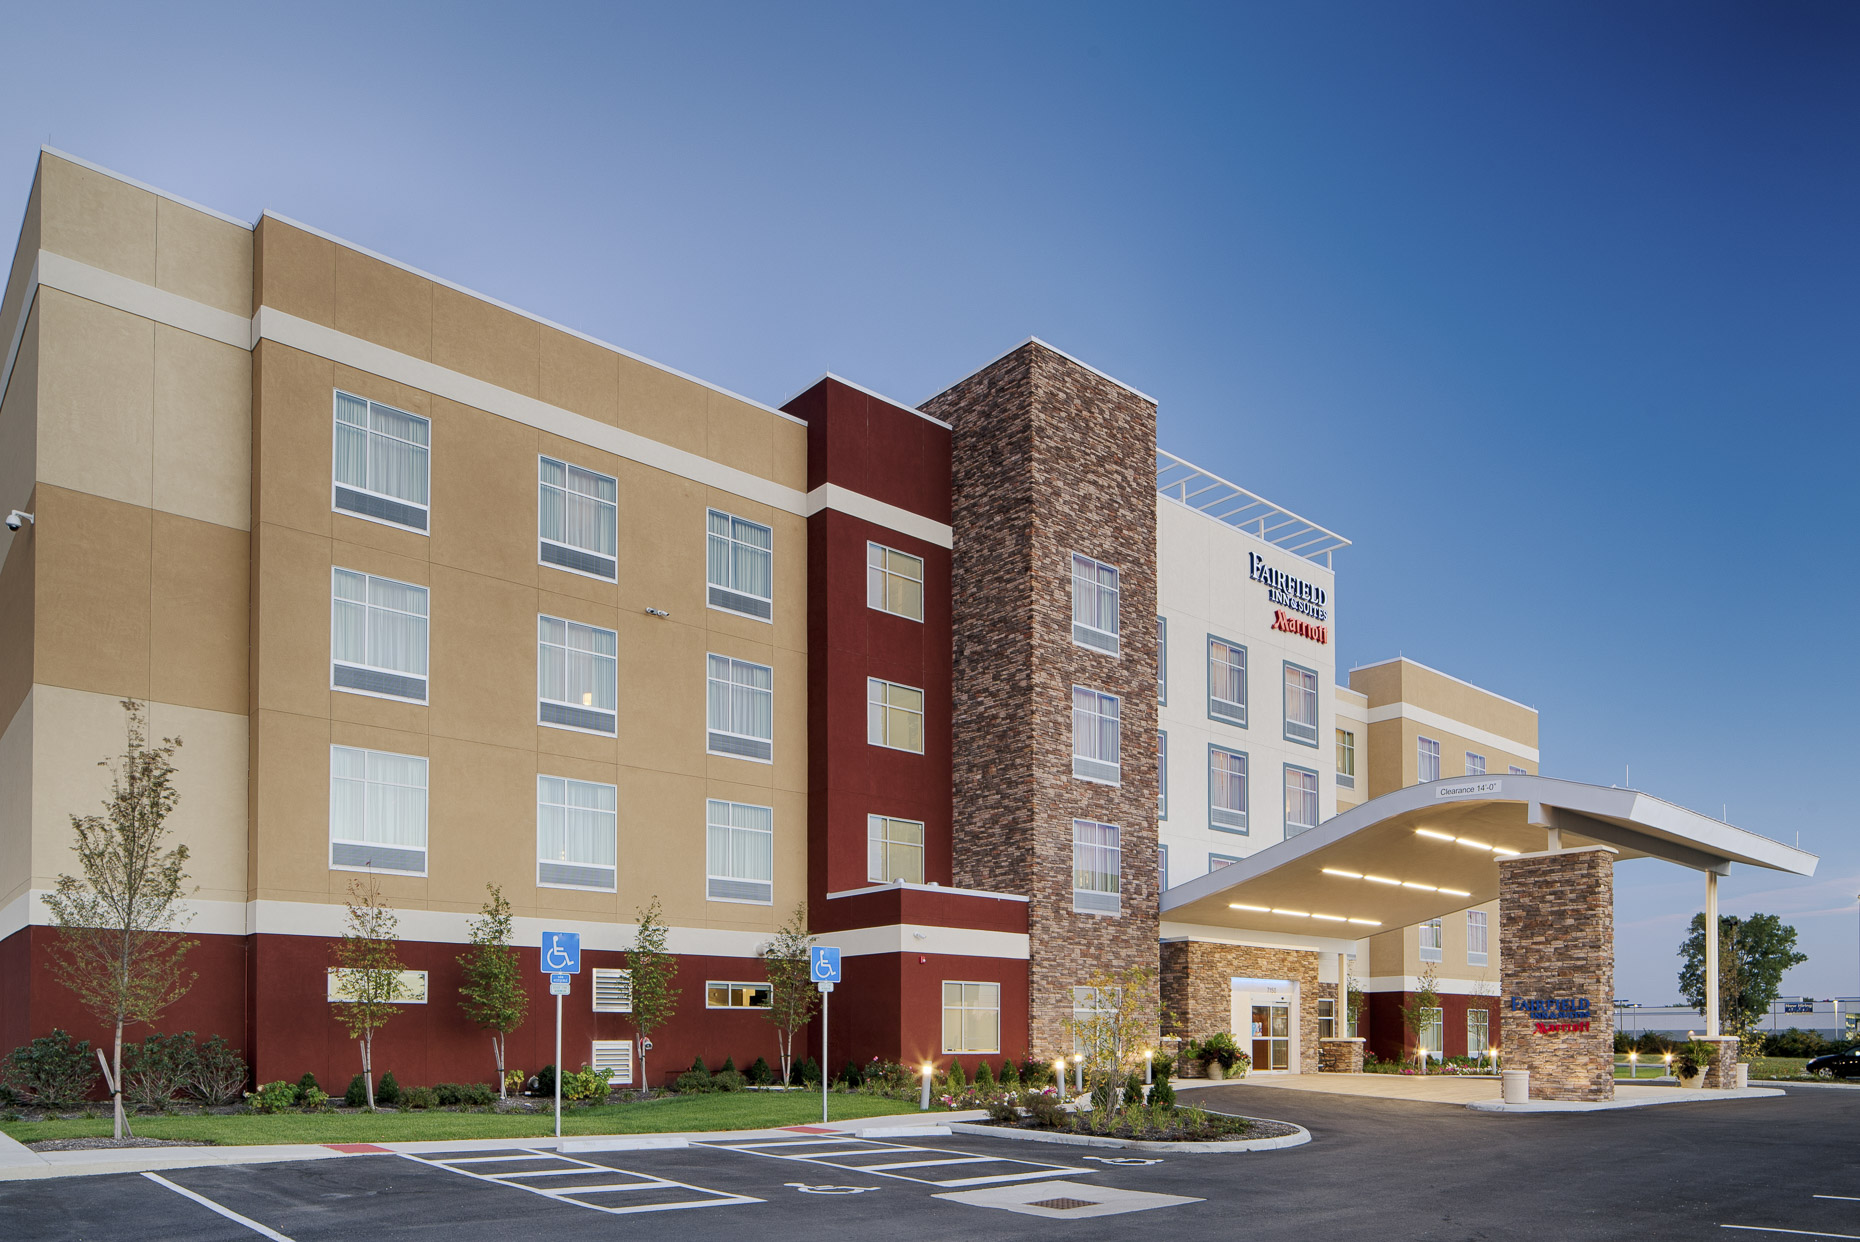 Fairfield Inn & Suites North Columbus - Dublin by Marriott photographed by Lauren K Davis based in Columbus, Ohio